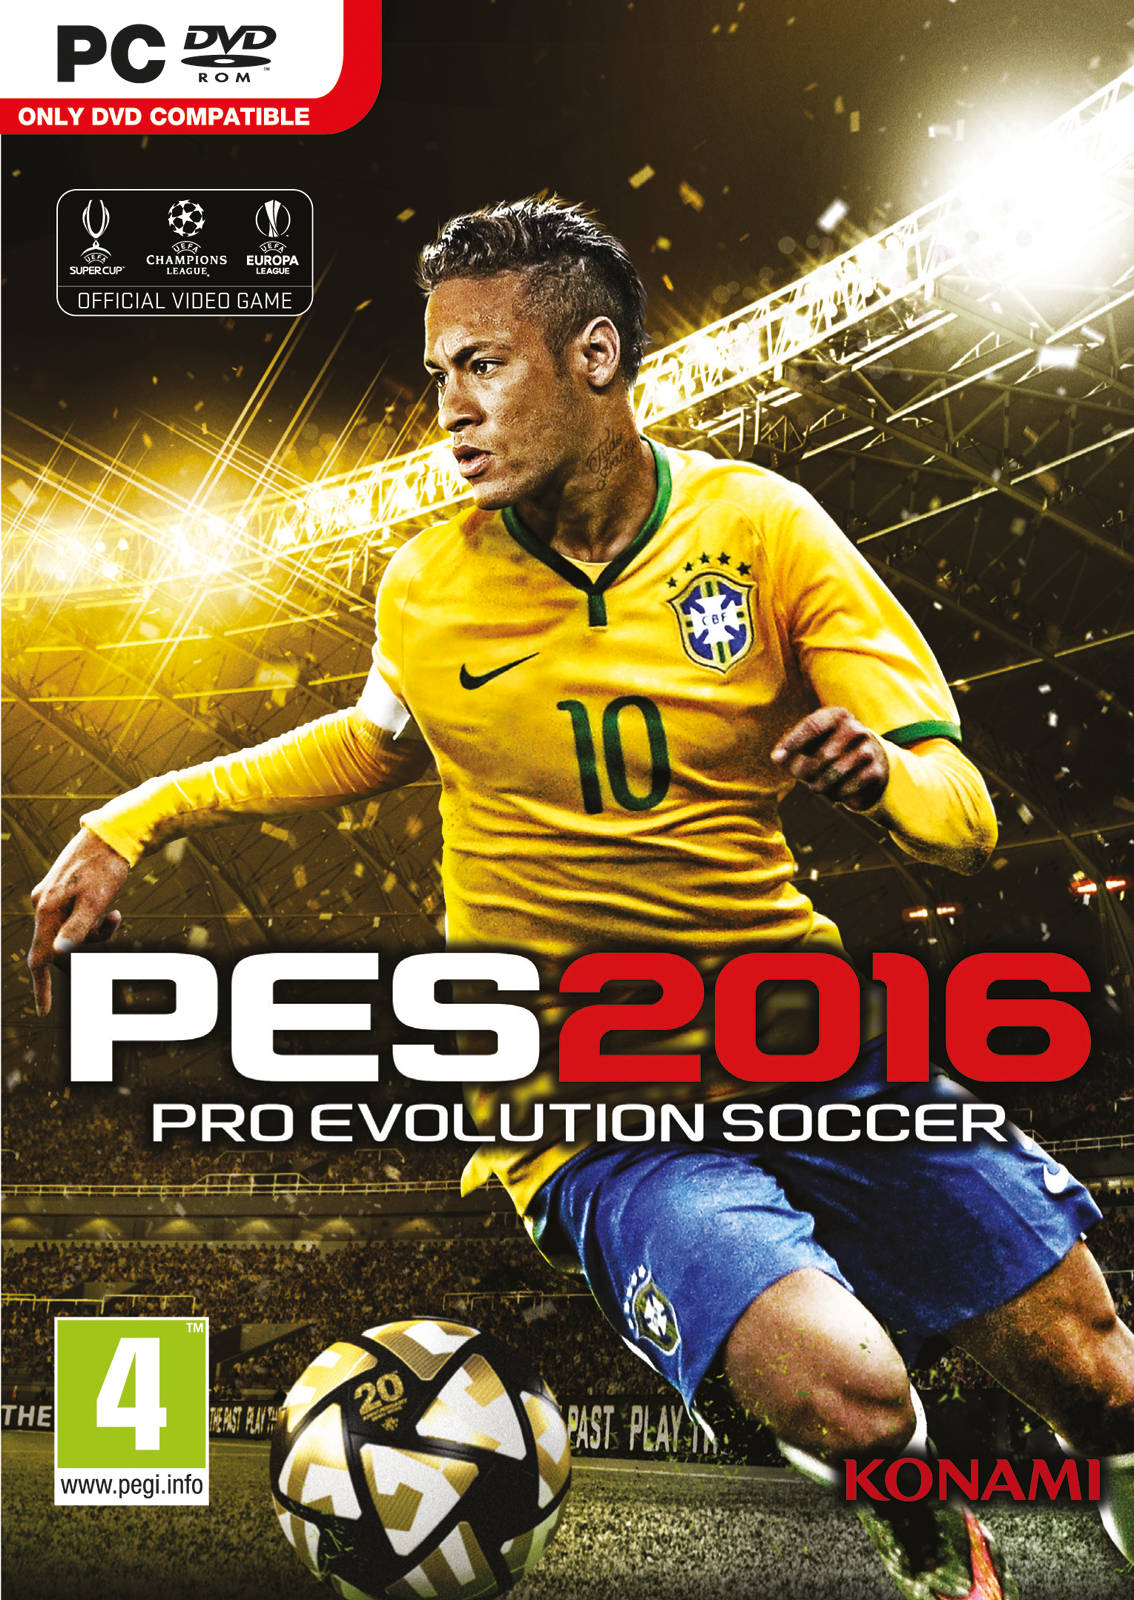 Pes 2012 ps2 download iso portugues | Pro Evolution Soccer